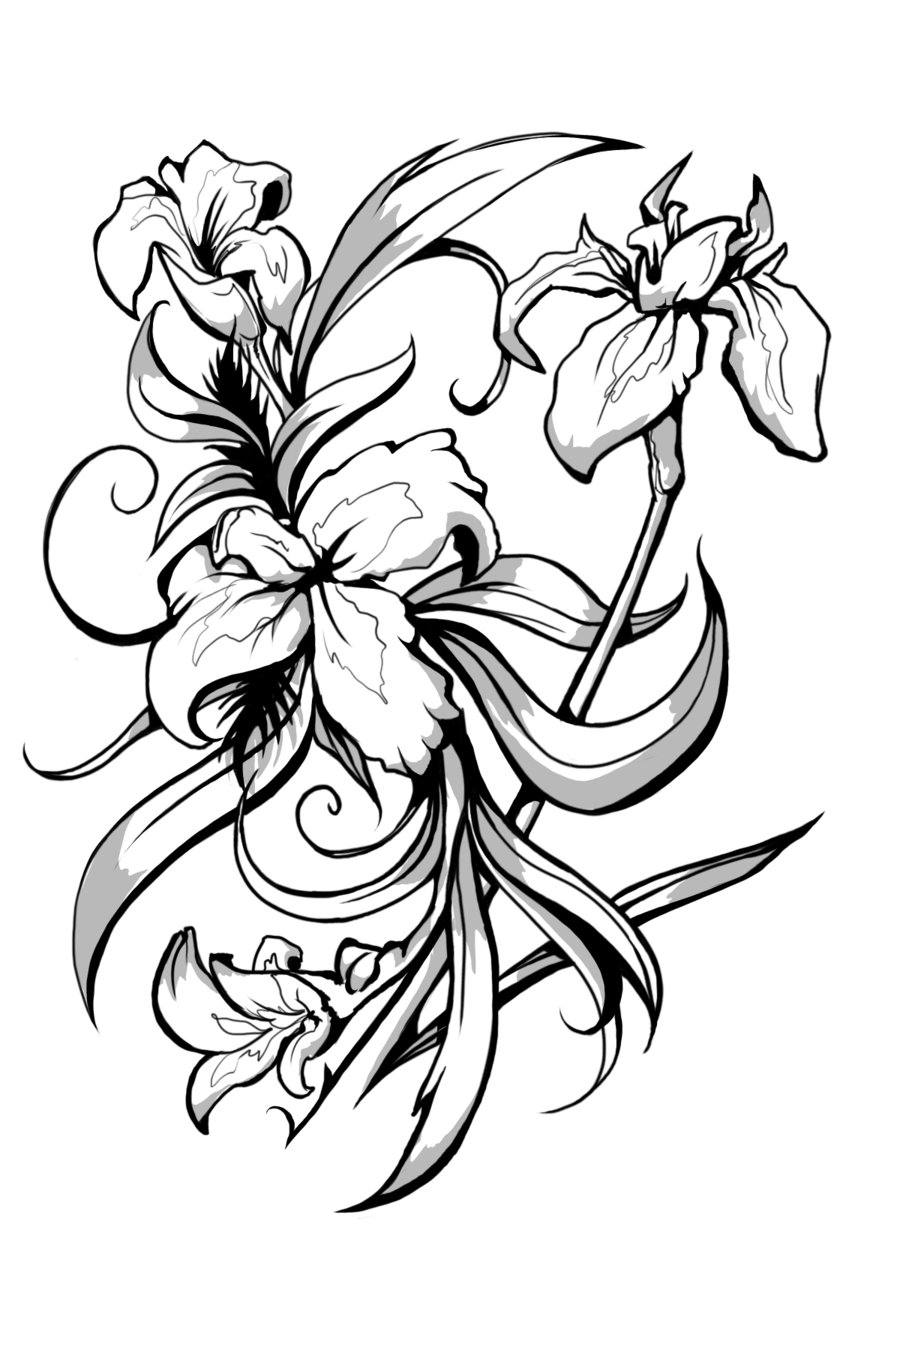 Black Line Drawing Tattoo : Black and white iris flower tattoo designs clipart best